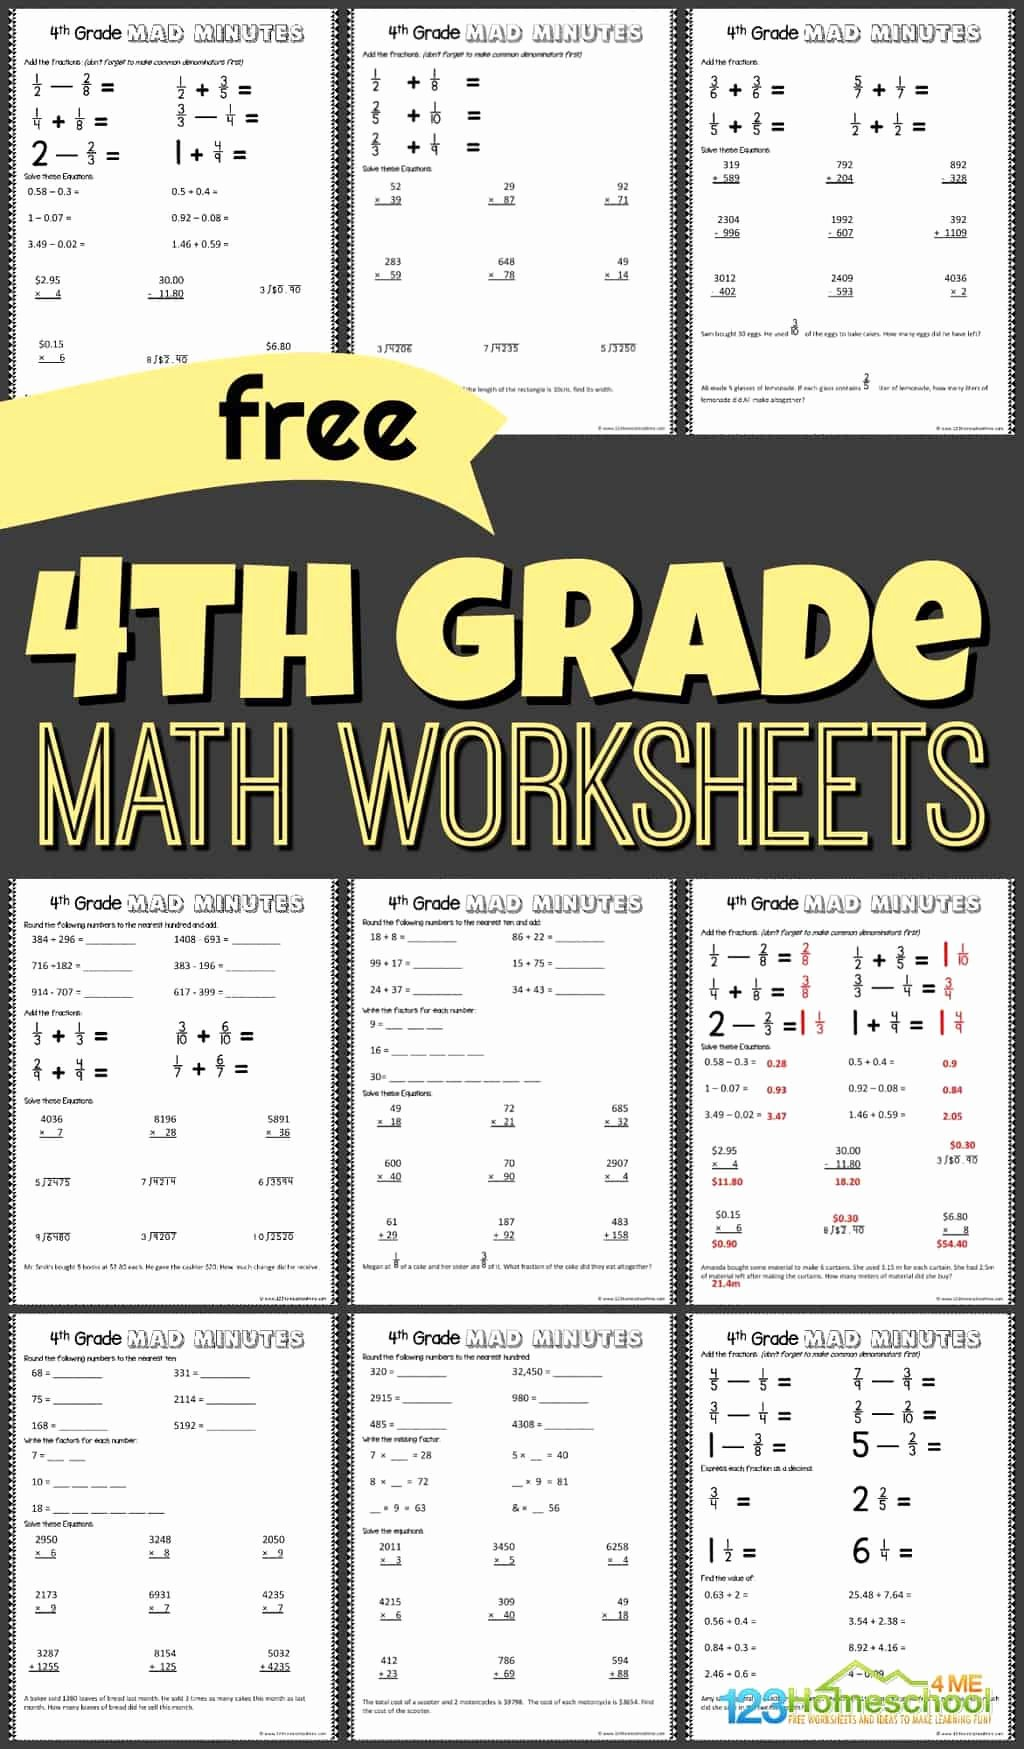 Free 4th Grade Multiplication Worksheets Fresh Free 4th Grade Math Worksheets